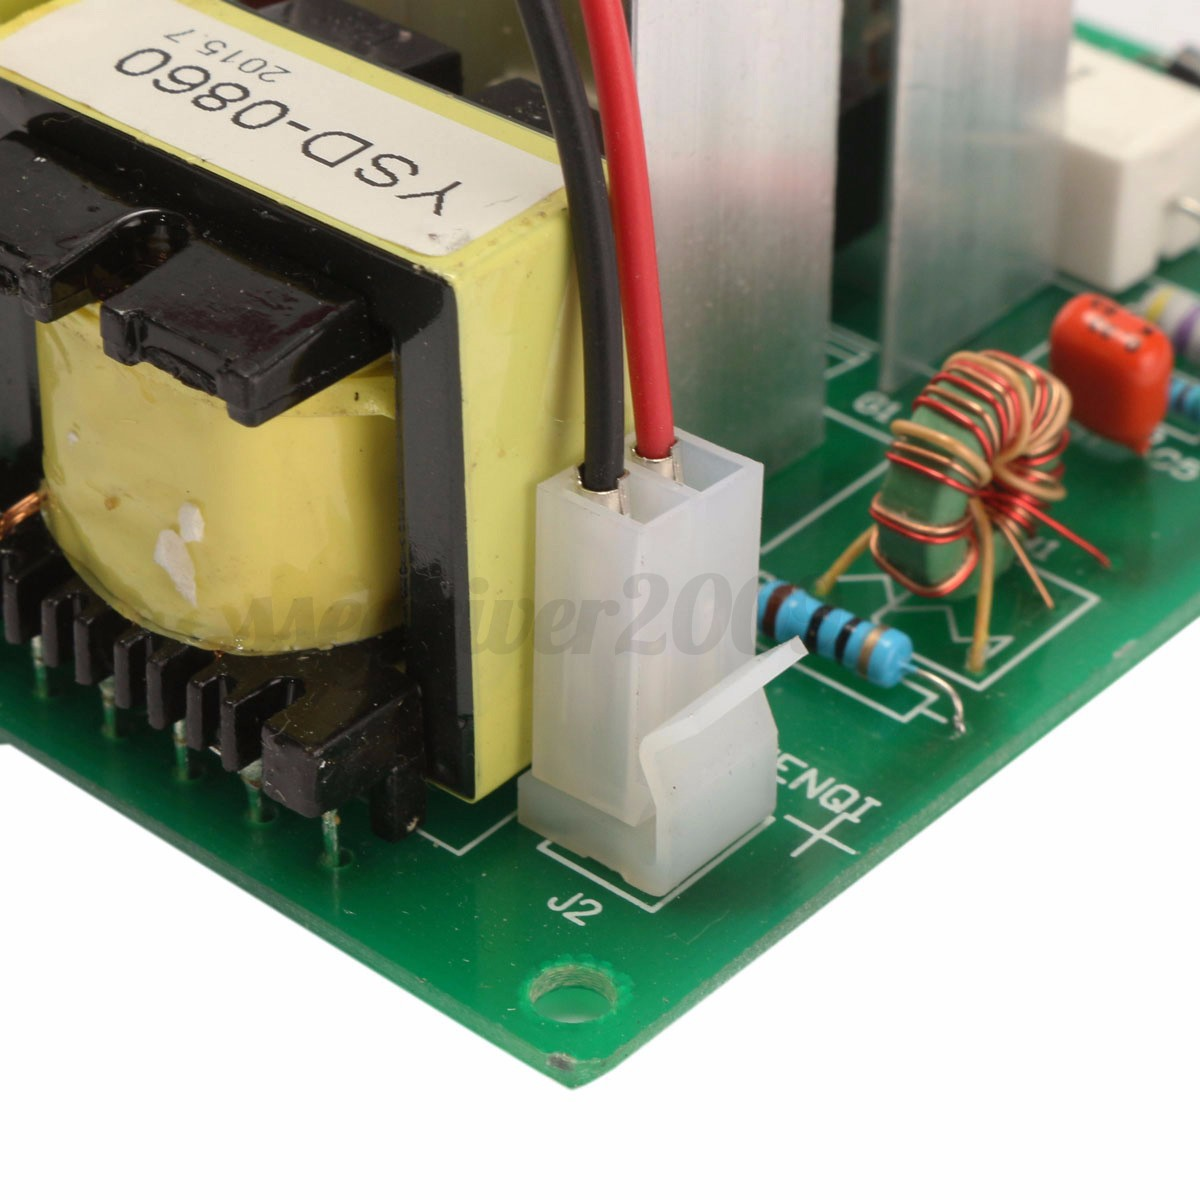 110v 100w 40khz Ultrasonic Cleaner Power Driver Board With 60w Transducer Circuit Detail Image